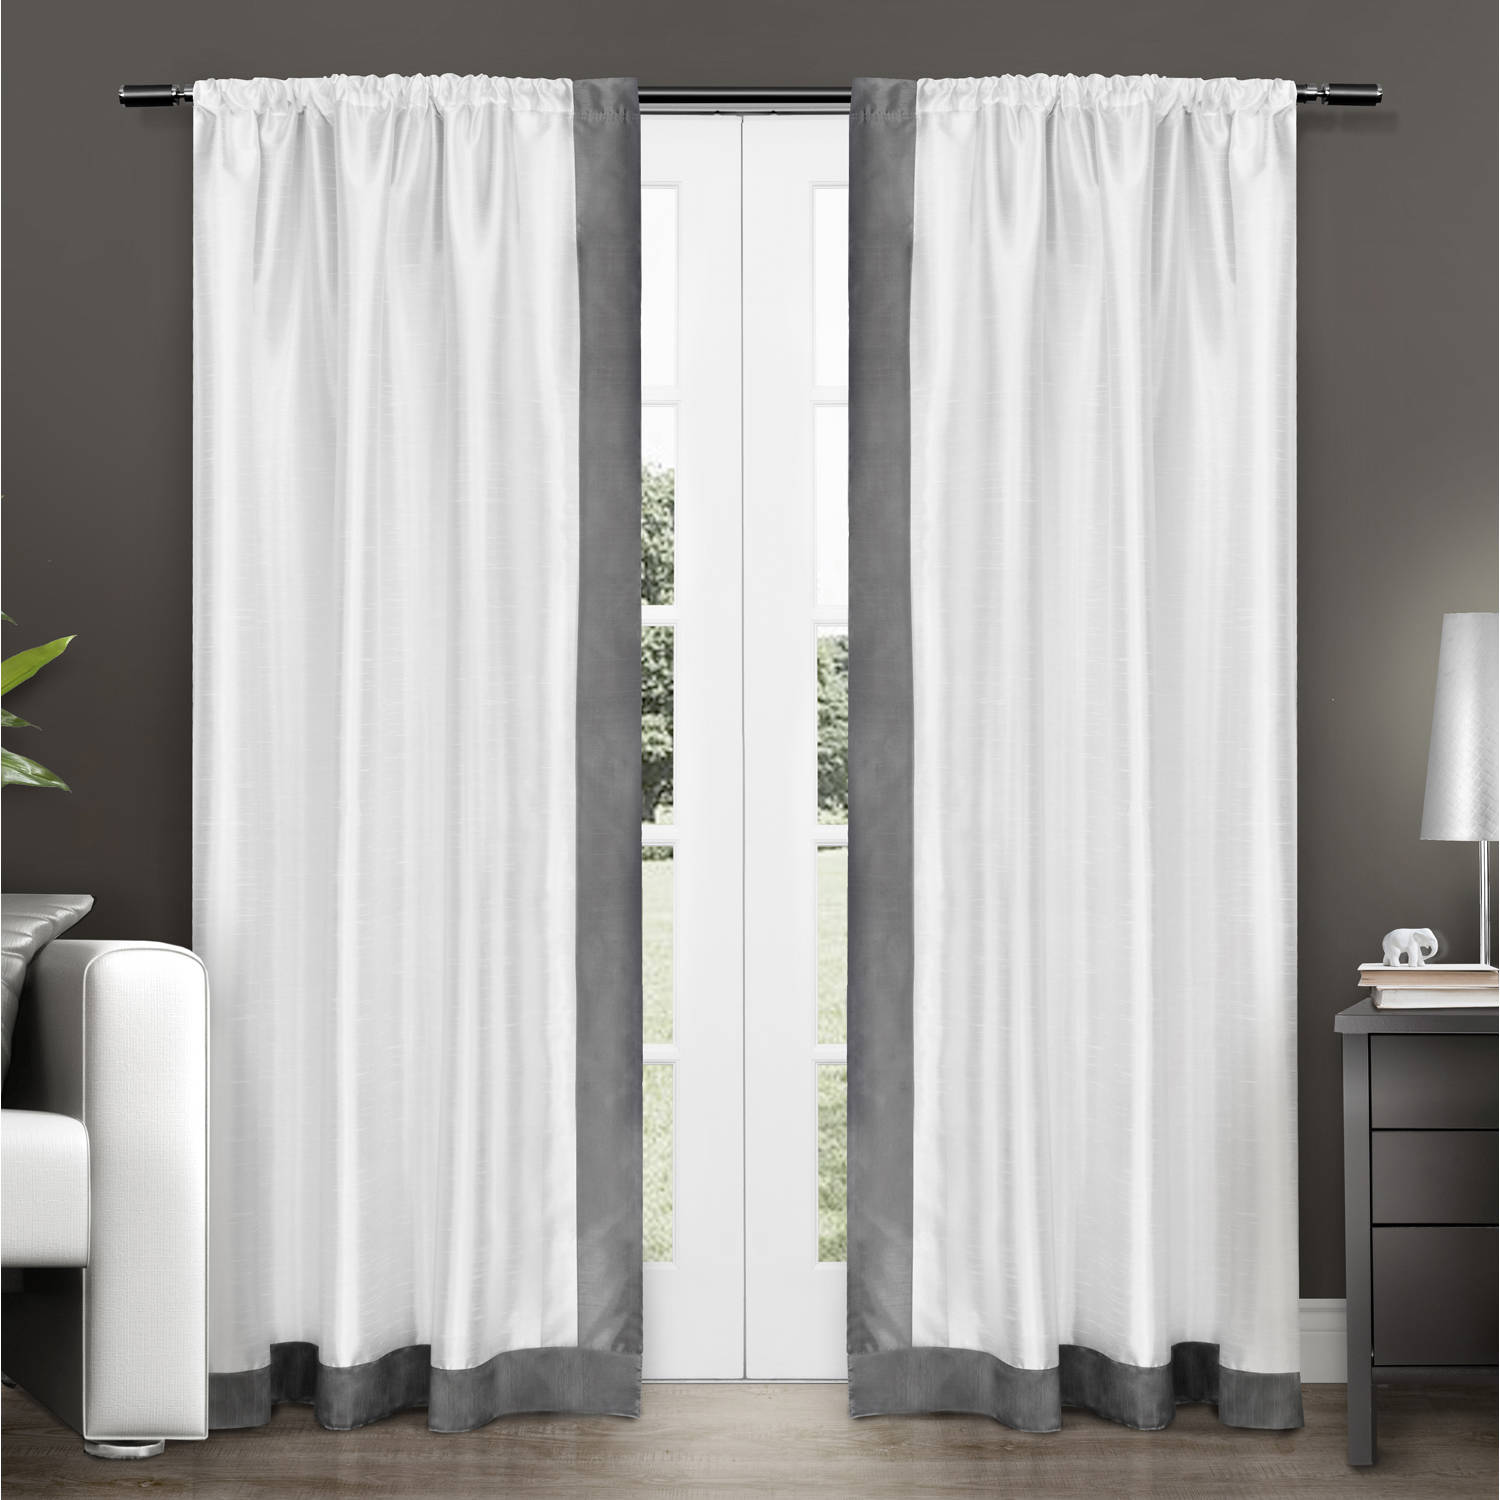 Exclusive Home Grammercy Bordered Faux Silk Window Curtain Panel Pair with Rod Pocket